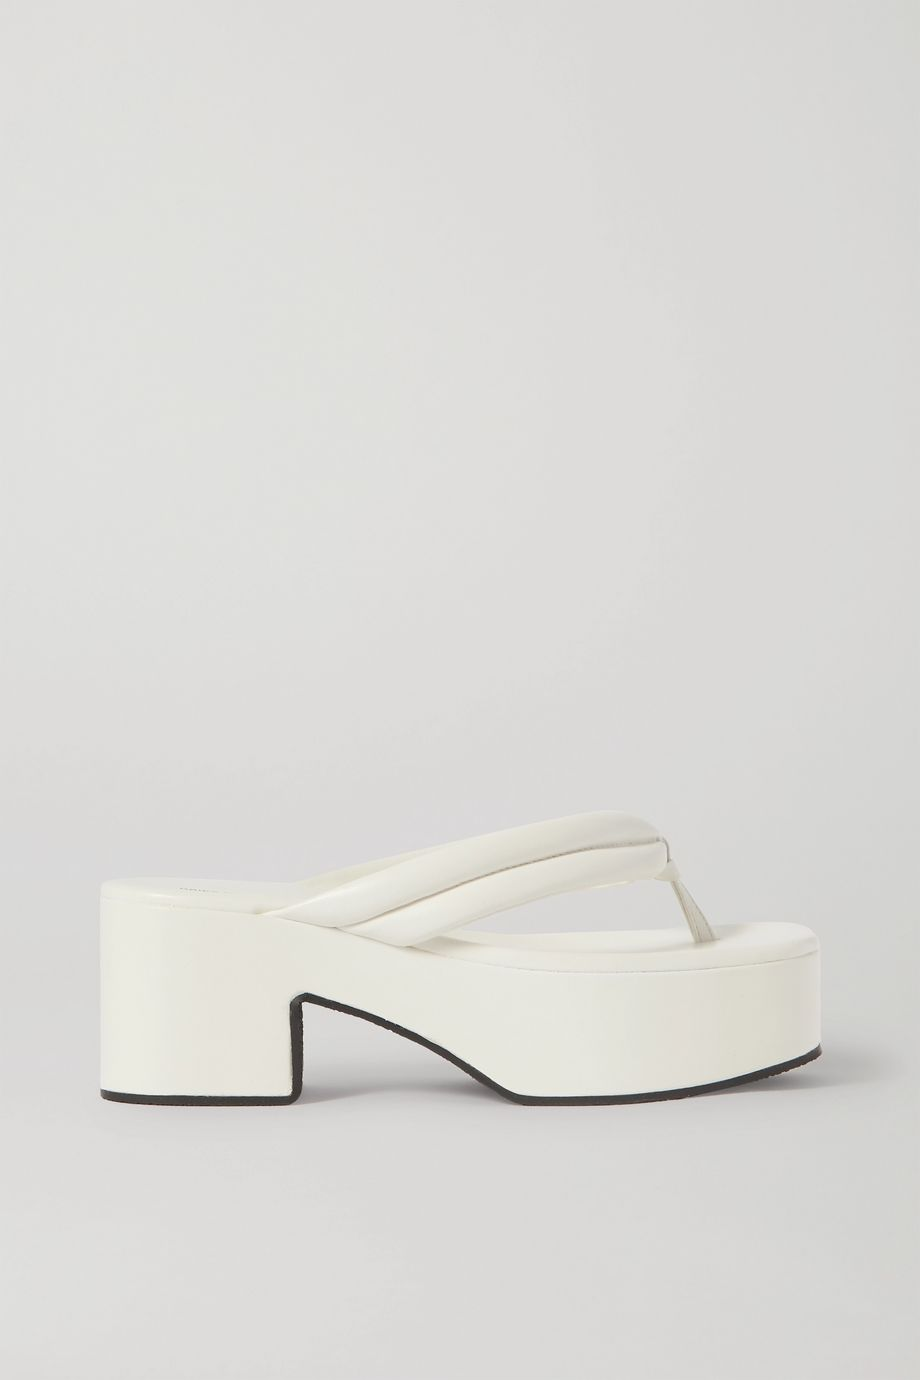 Dries Van Noten Leather platform flip flops